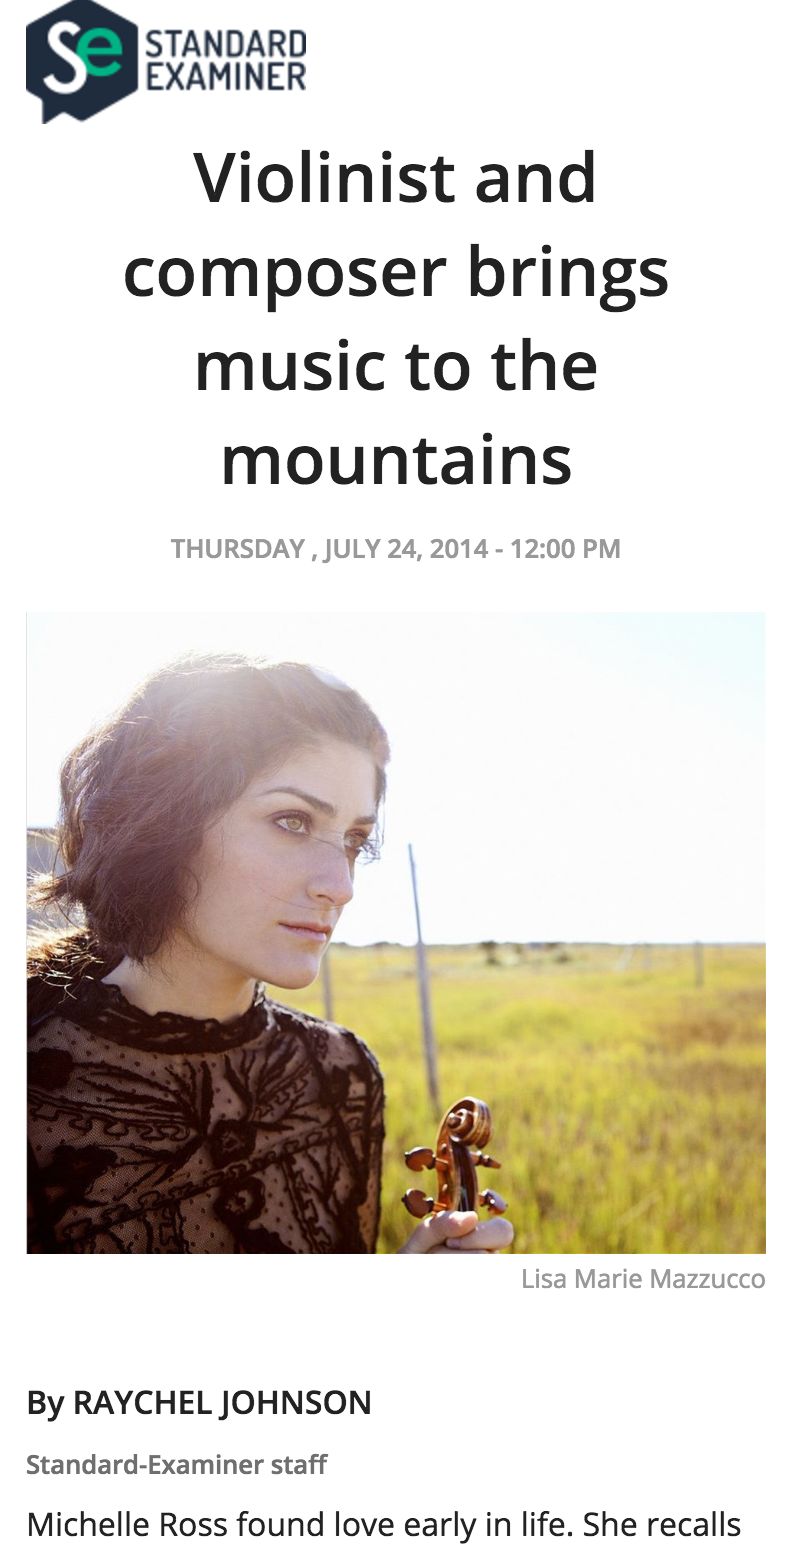 READ THE COMPLETE ARTICLE:   http://www.standard.net/Entertainment/2014/07/24/Violinist-and-composer-visits-vistas-of-Powder-Mountain-for-concert.html